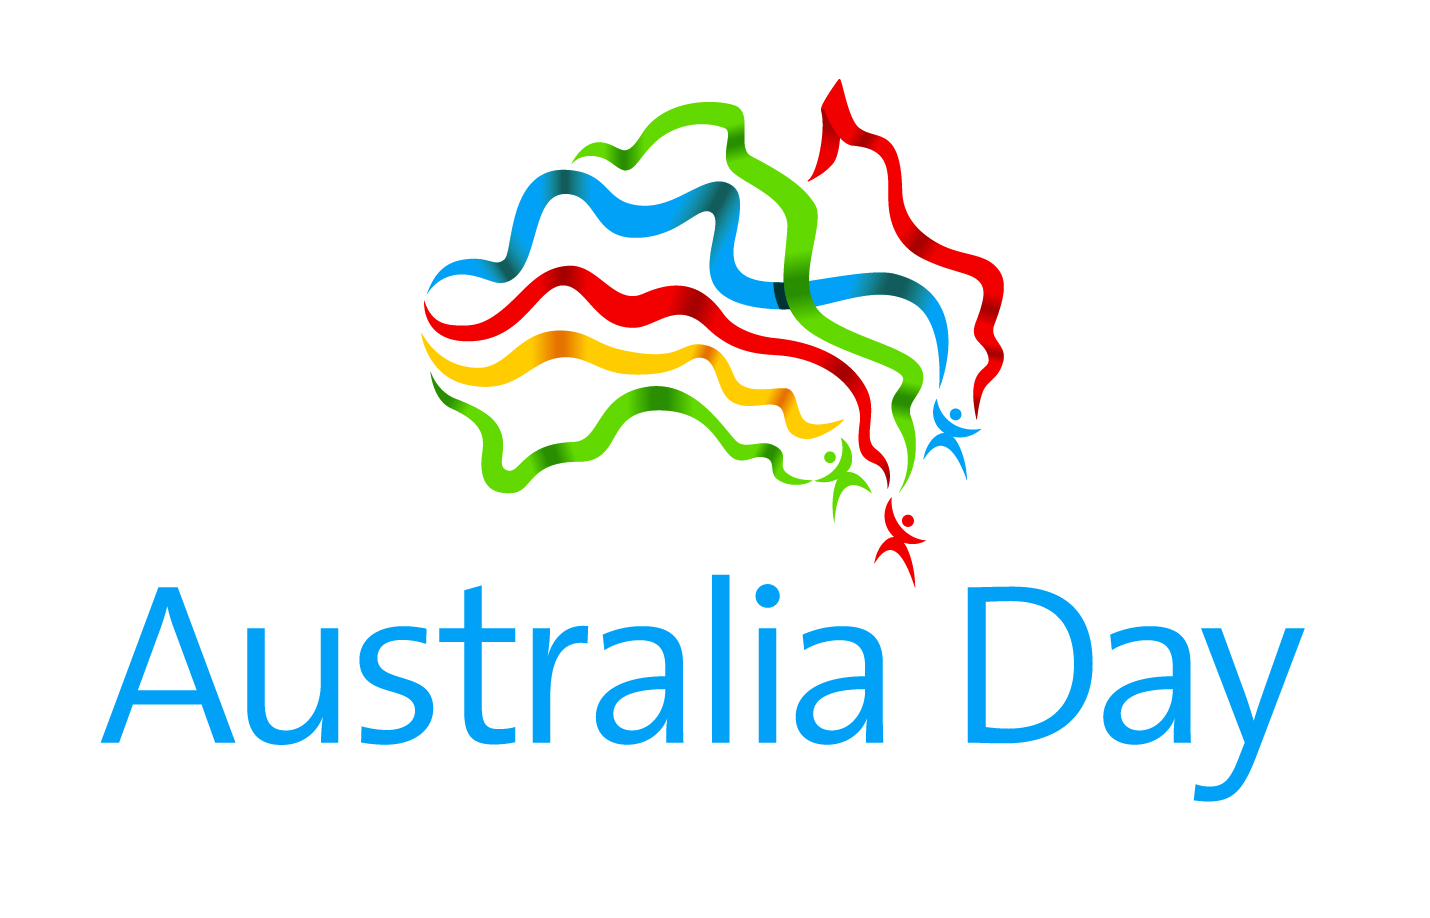 Australia Day 2018 Ribbons Picture